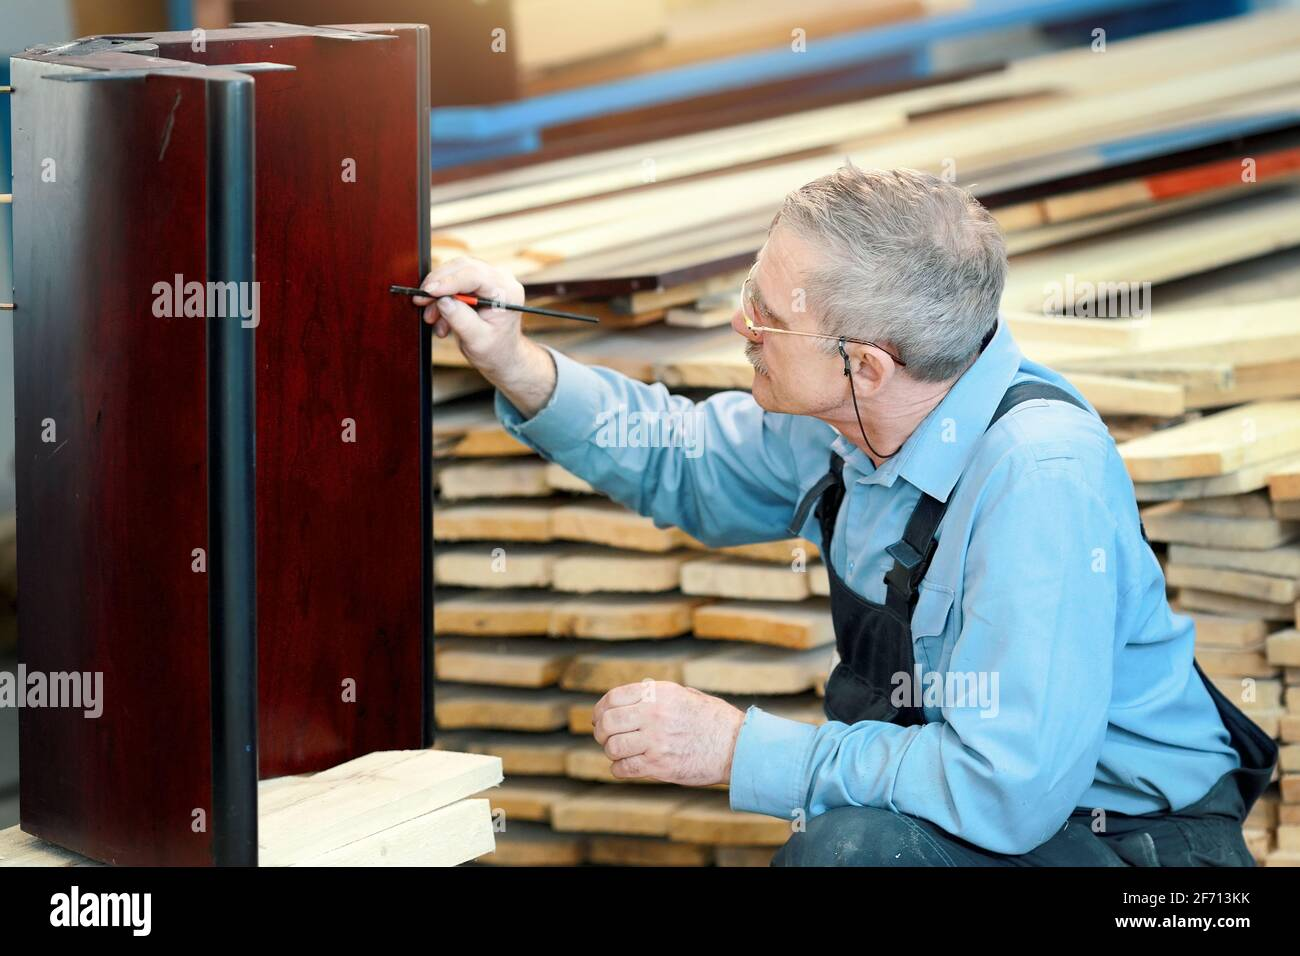 An elderly man with glasses and gray hair works with wood in a carpentry shop. A worker of Caucasian appearance is engaged in the restoration of furniture. Part-time job for a pensioner Stock Photo